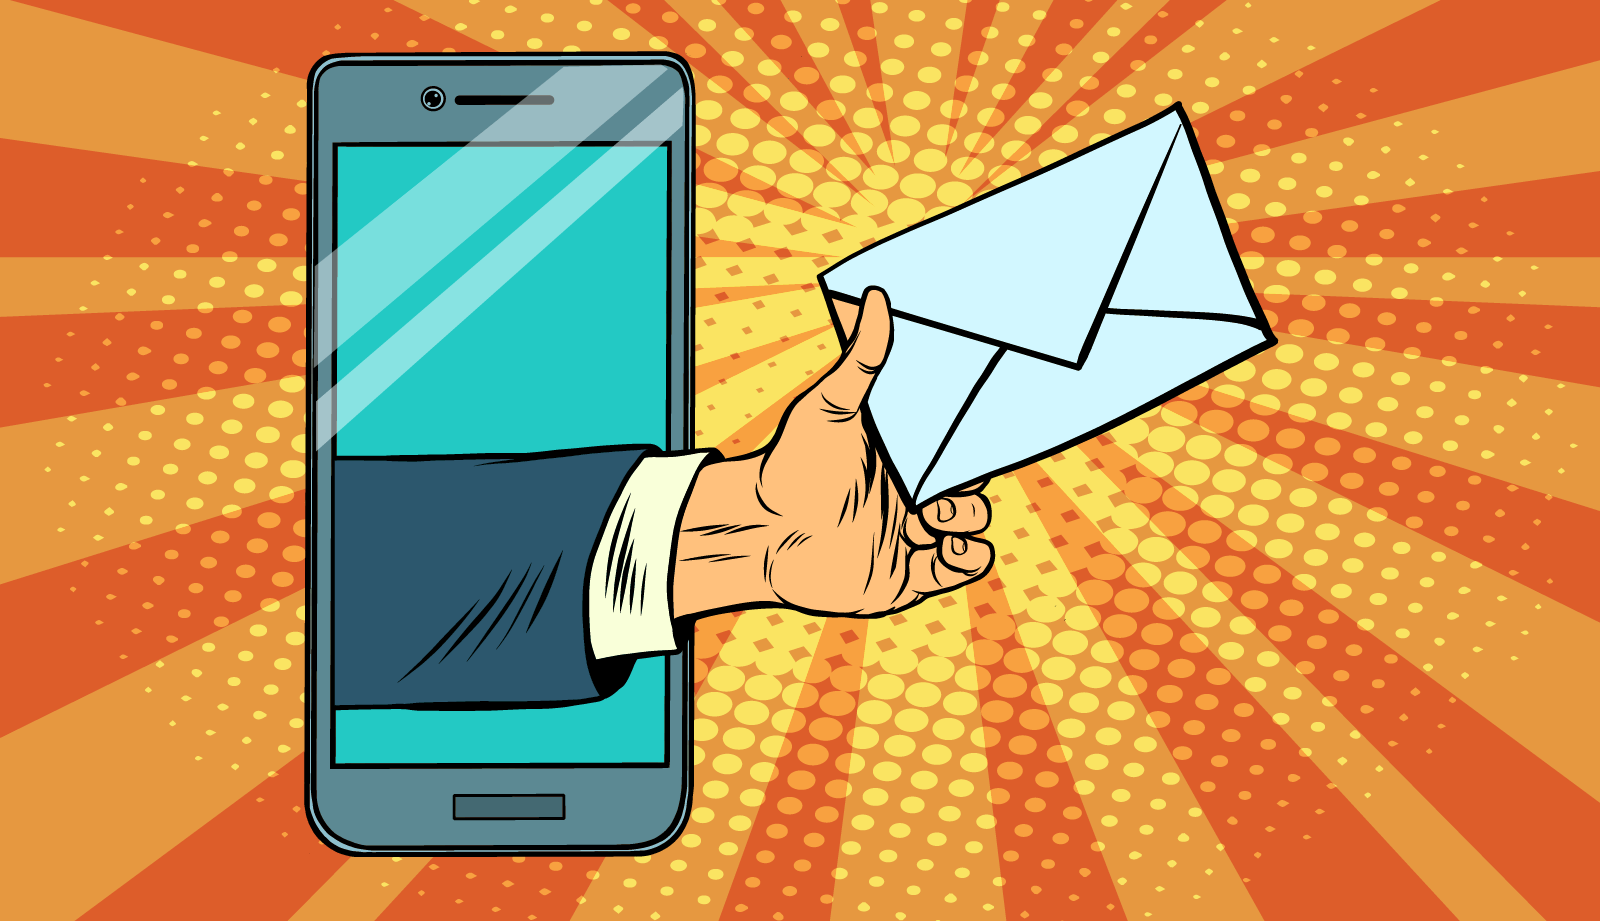 Hand passing mail out of a smart phone